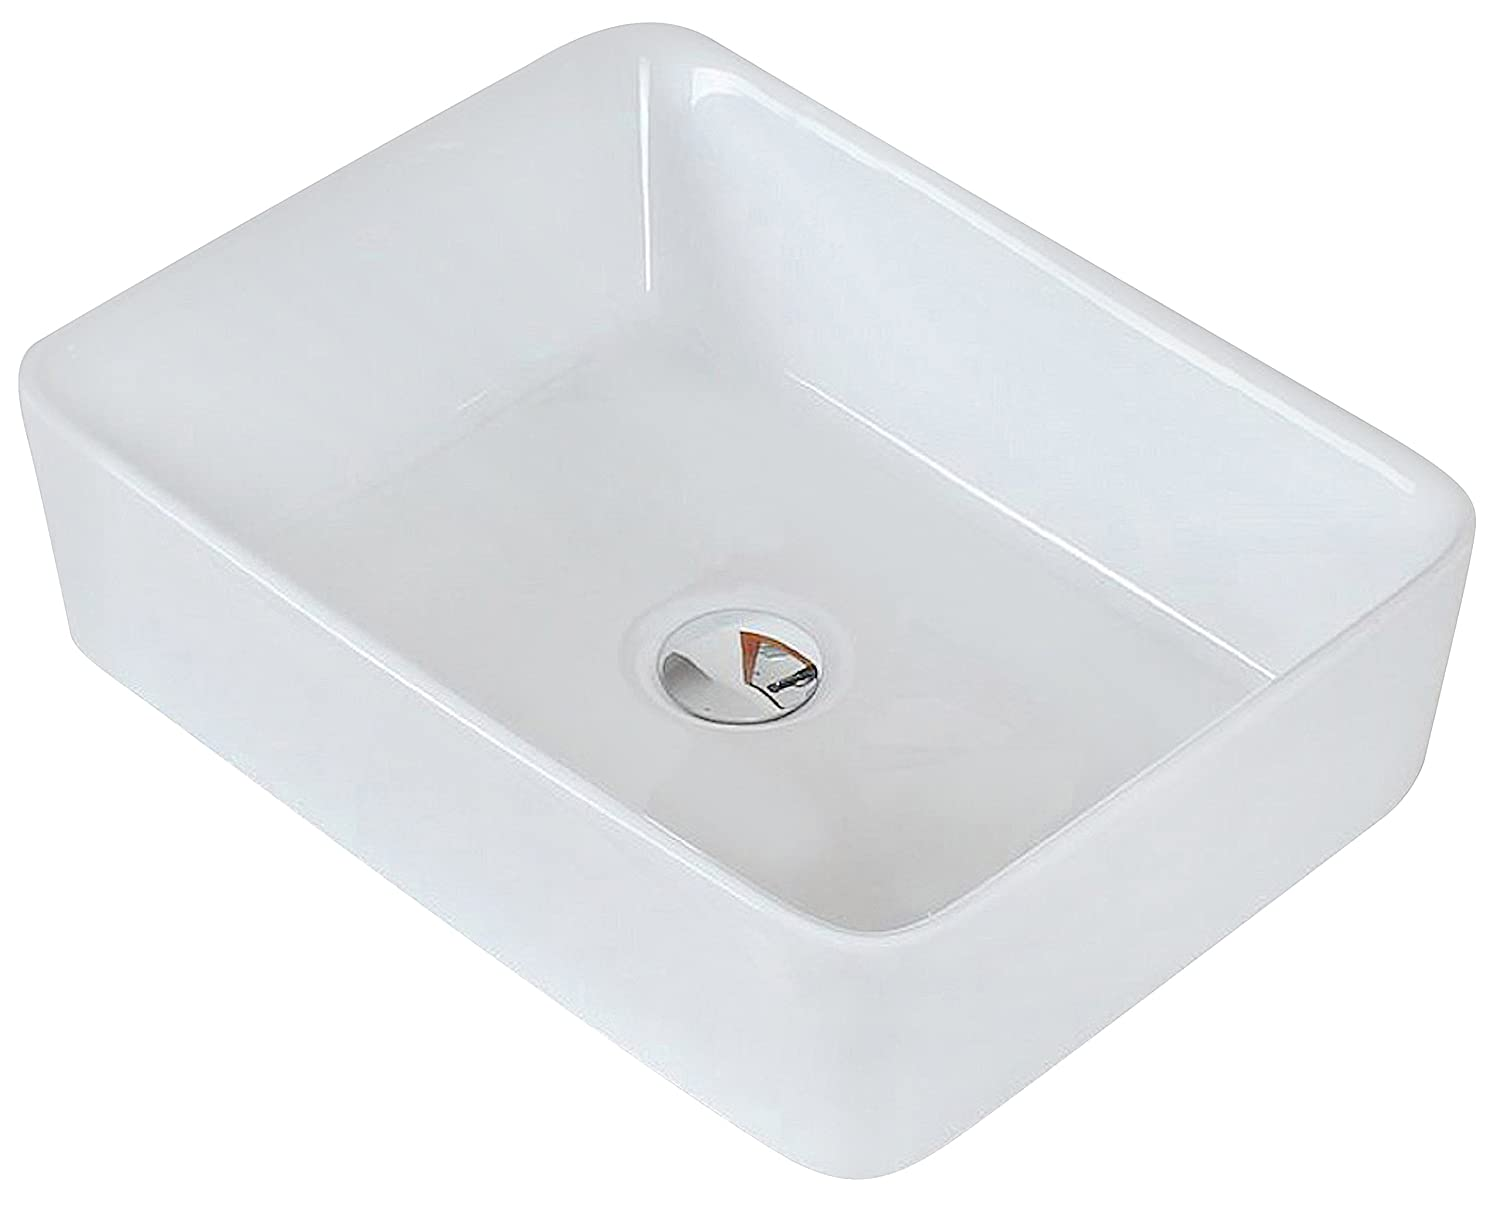 American Imaginations 18.75-in. W x 14.75-in. D Above Counter Rectangle Vessel In White Color For Deck Mount Faucet, AI-10-155